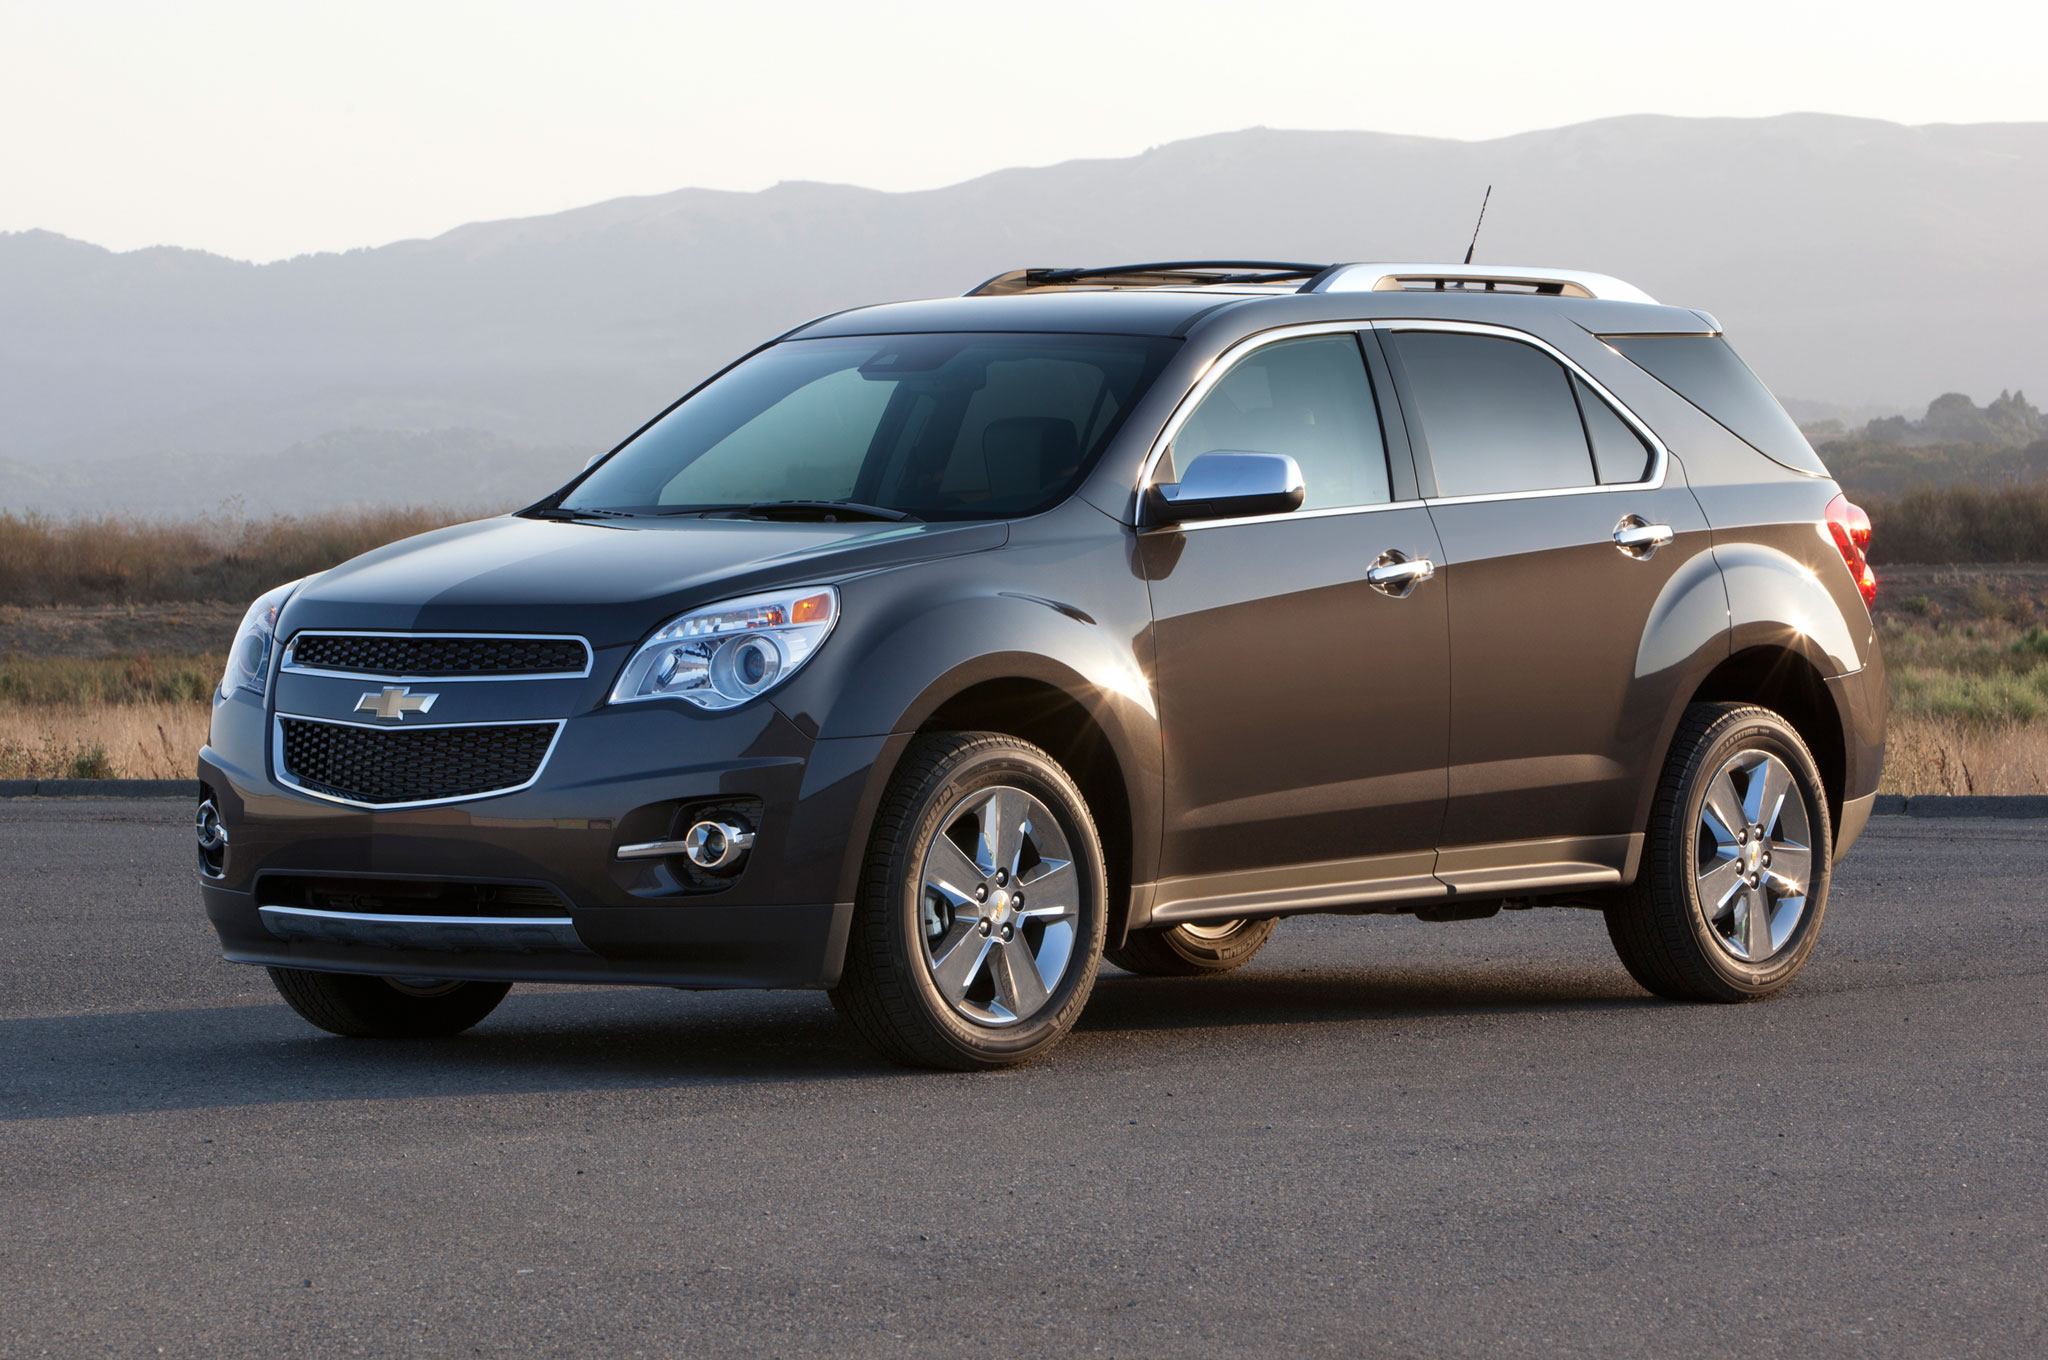 Gm december 2014 sales up 19 percent to finish the year winner chevrolet equinox fandeluxe Images